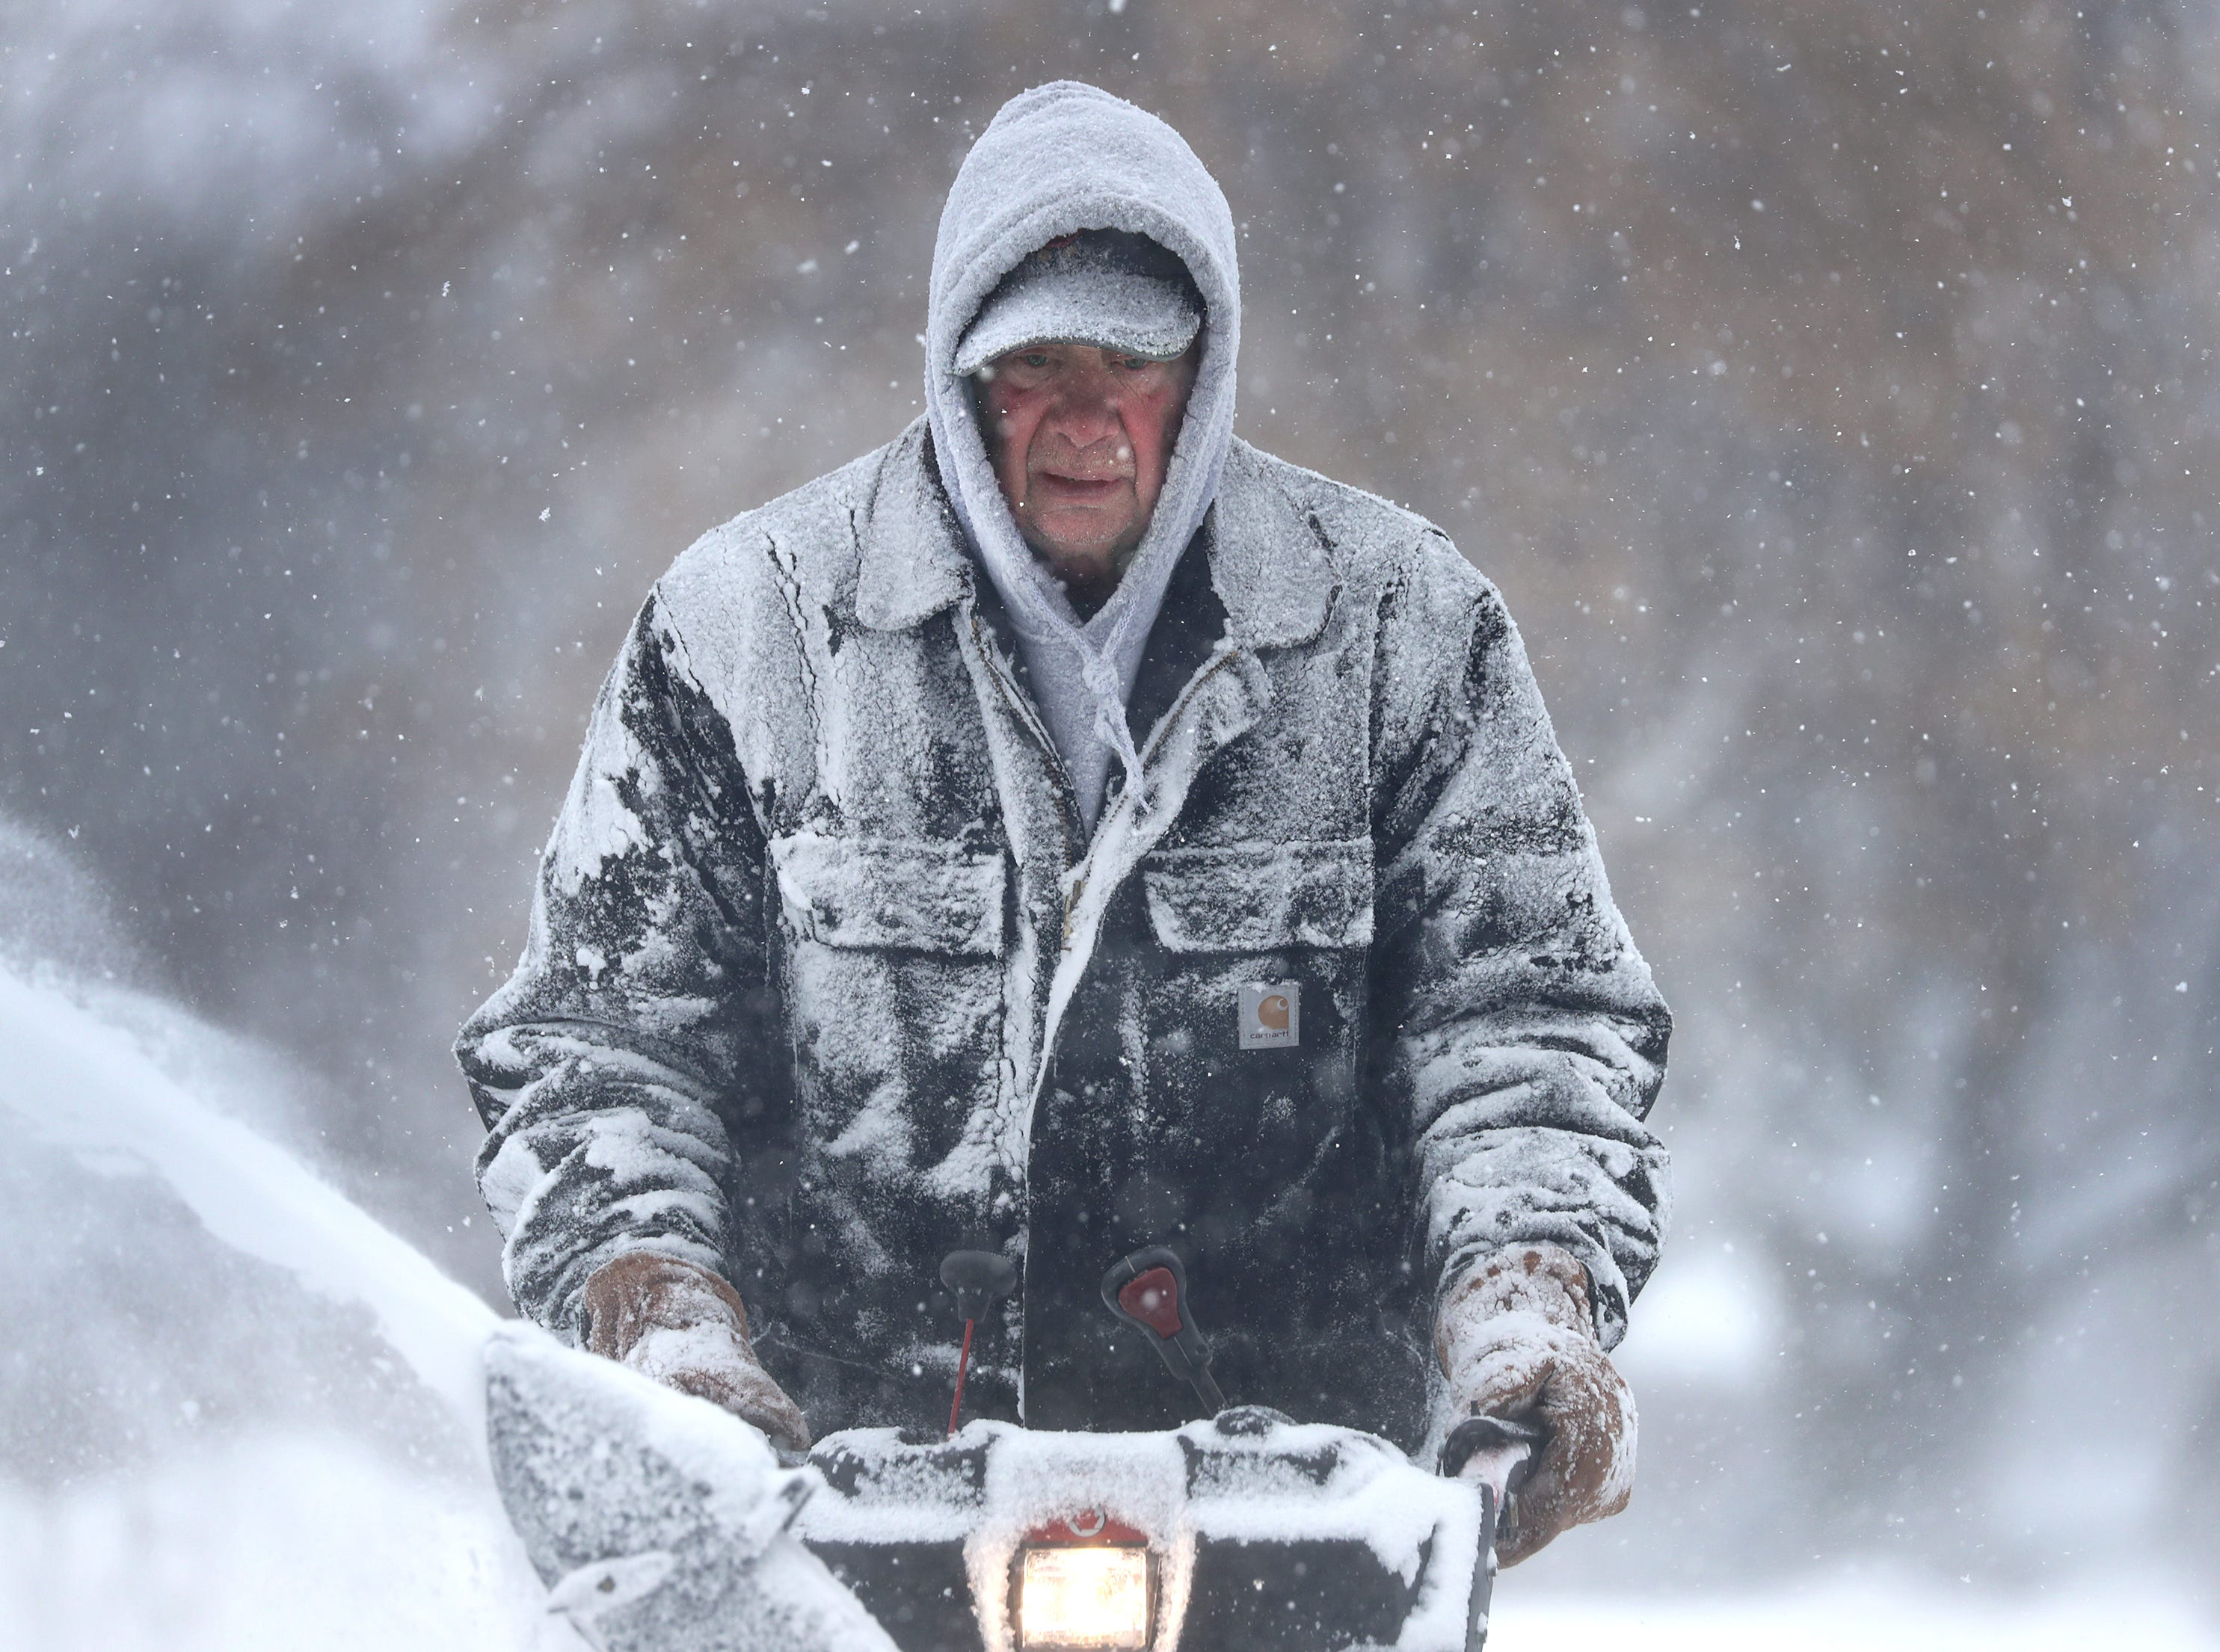 Gary Verstegen clears a sidewalk as a winter storm moves through Wisconsin on Monday, January 28, 2019, in Little Chute, Wis.